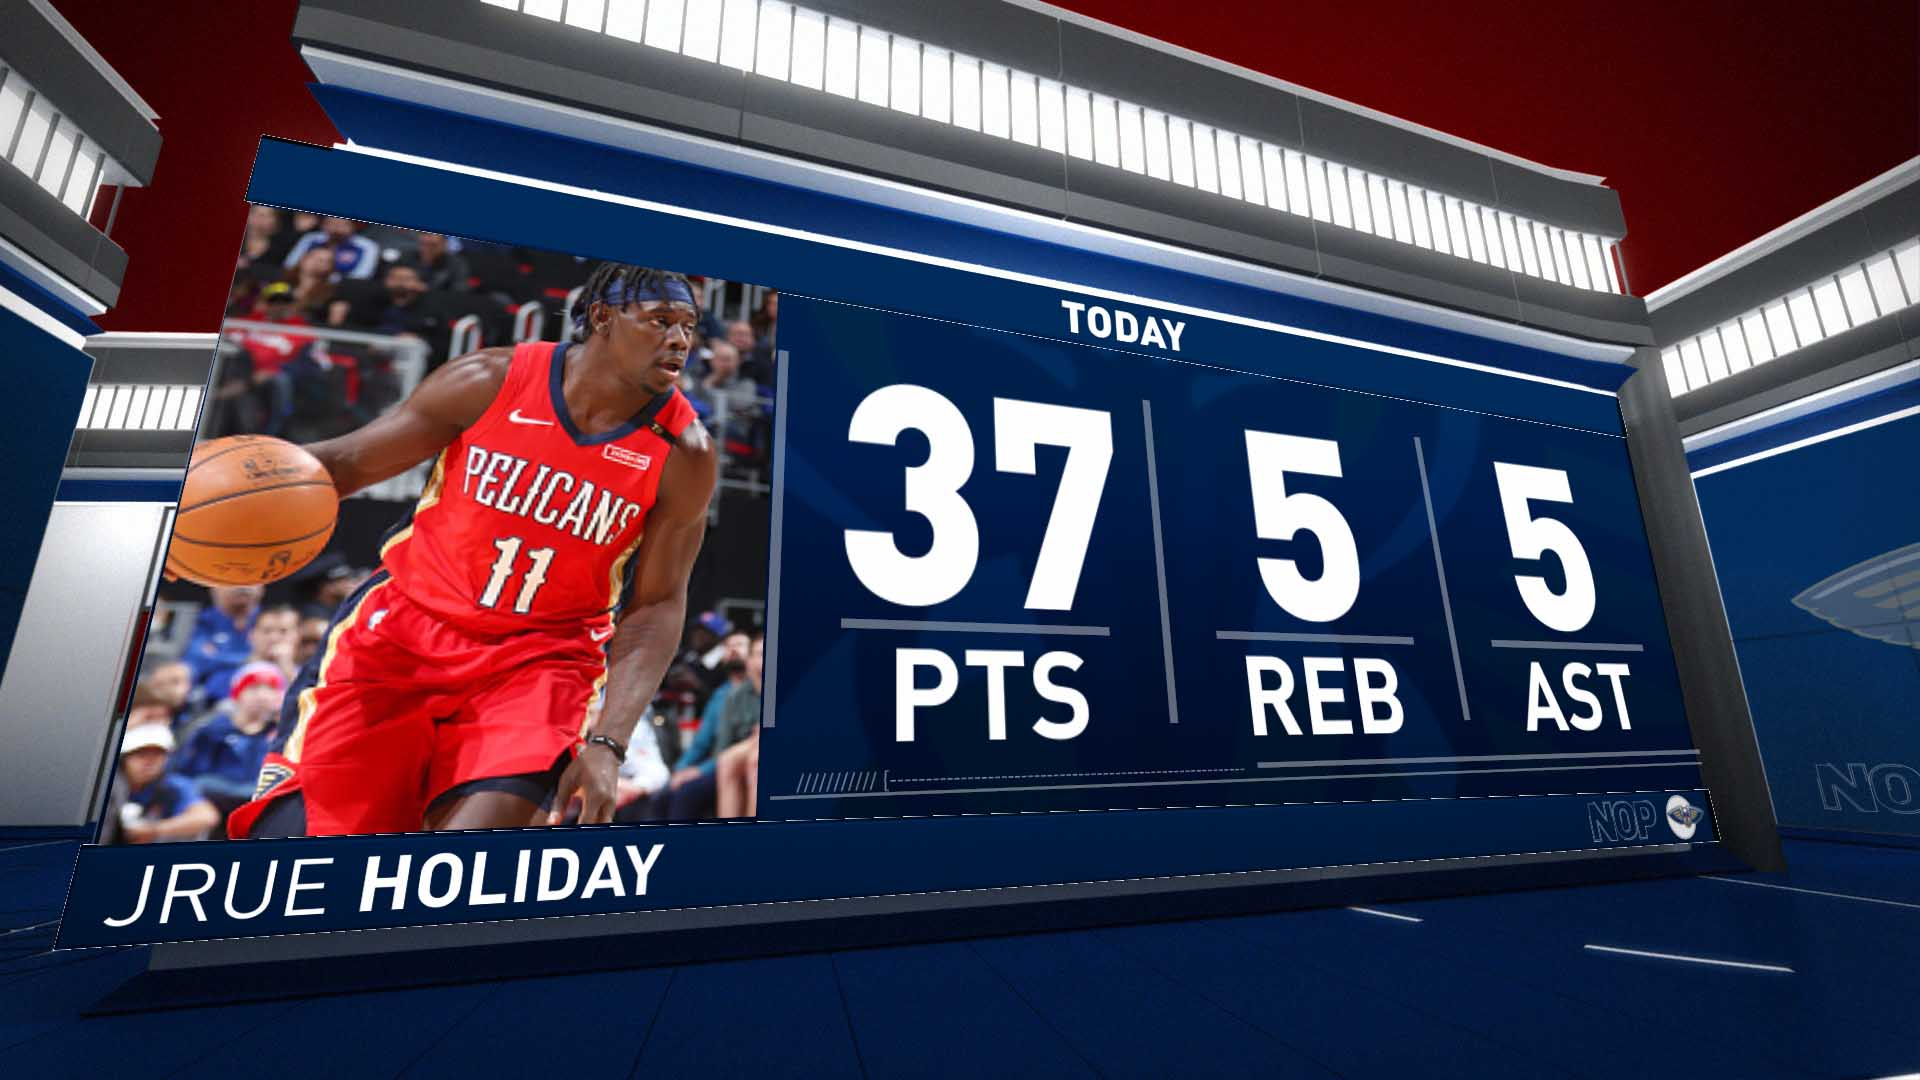 Stat Leader Highlights: Jrue Holiday pours in 37 points vs. Detroit Pistons